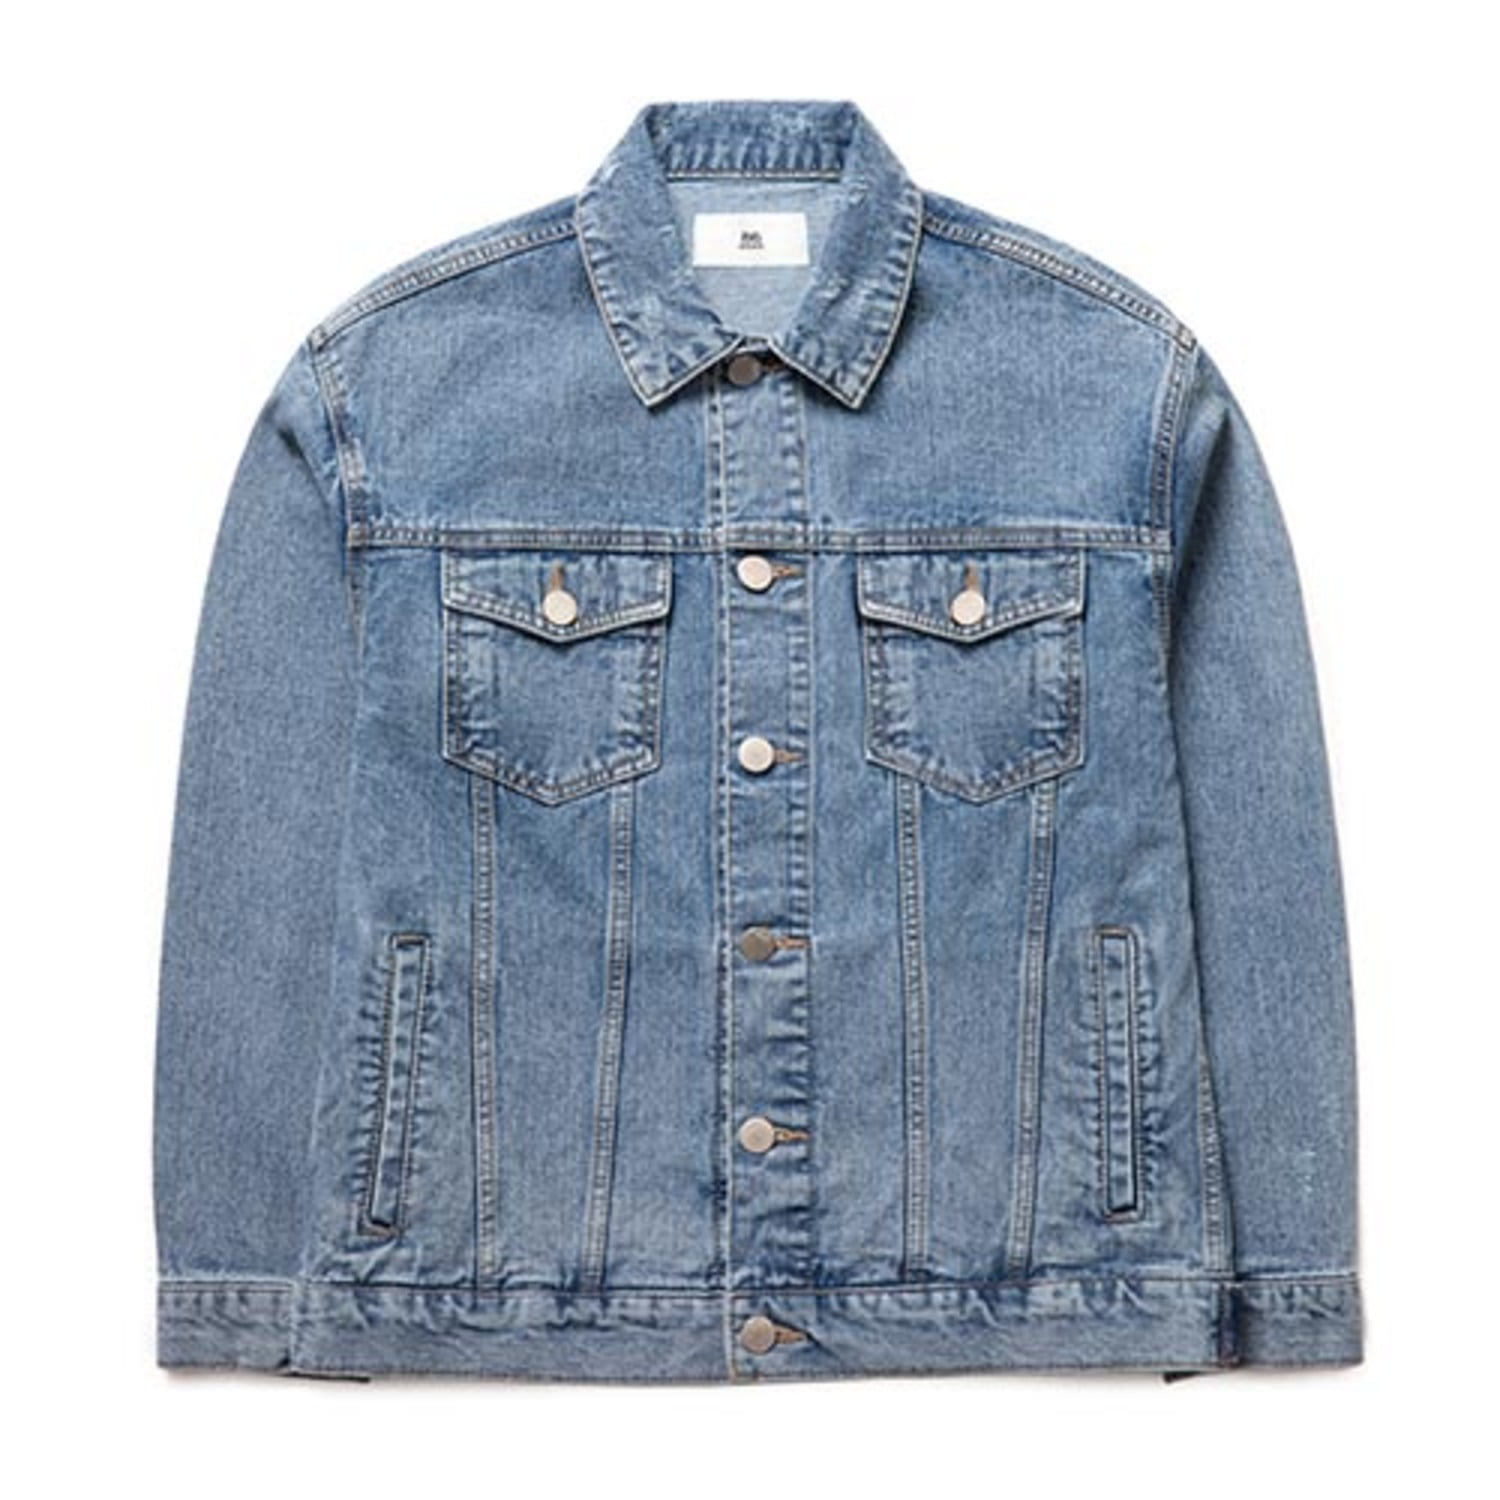 2826 Damage Stone Washing Denim Jacket (Blue Gray)(20%SALE)